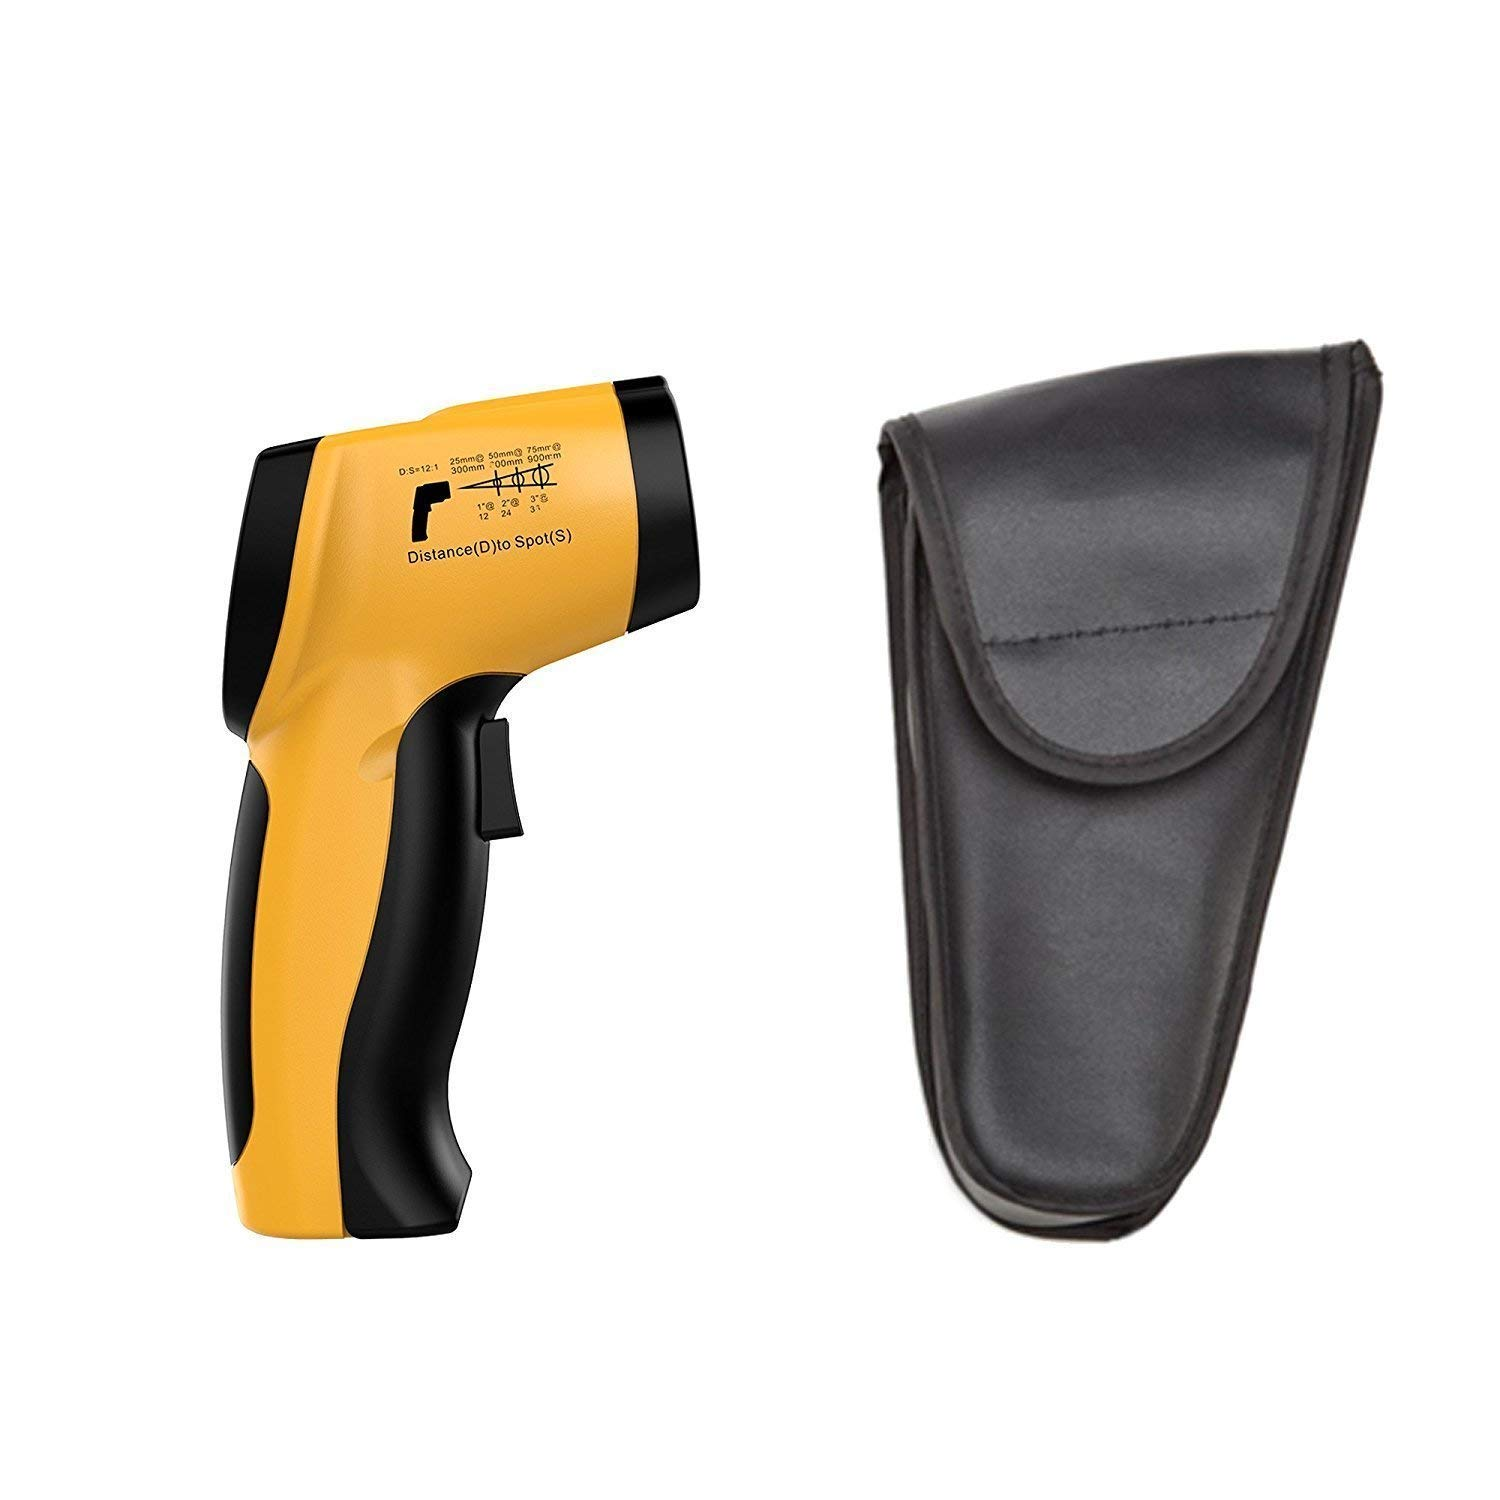 Dr -50 ~ 650 /°C//-58 /°F~1202 /°F 9V Battery included IR-20 Meter Lasergrip Dual Laser Non-contact Digital IR Infrared Thermometer Temperature Gun Yellow